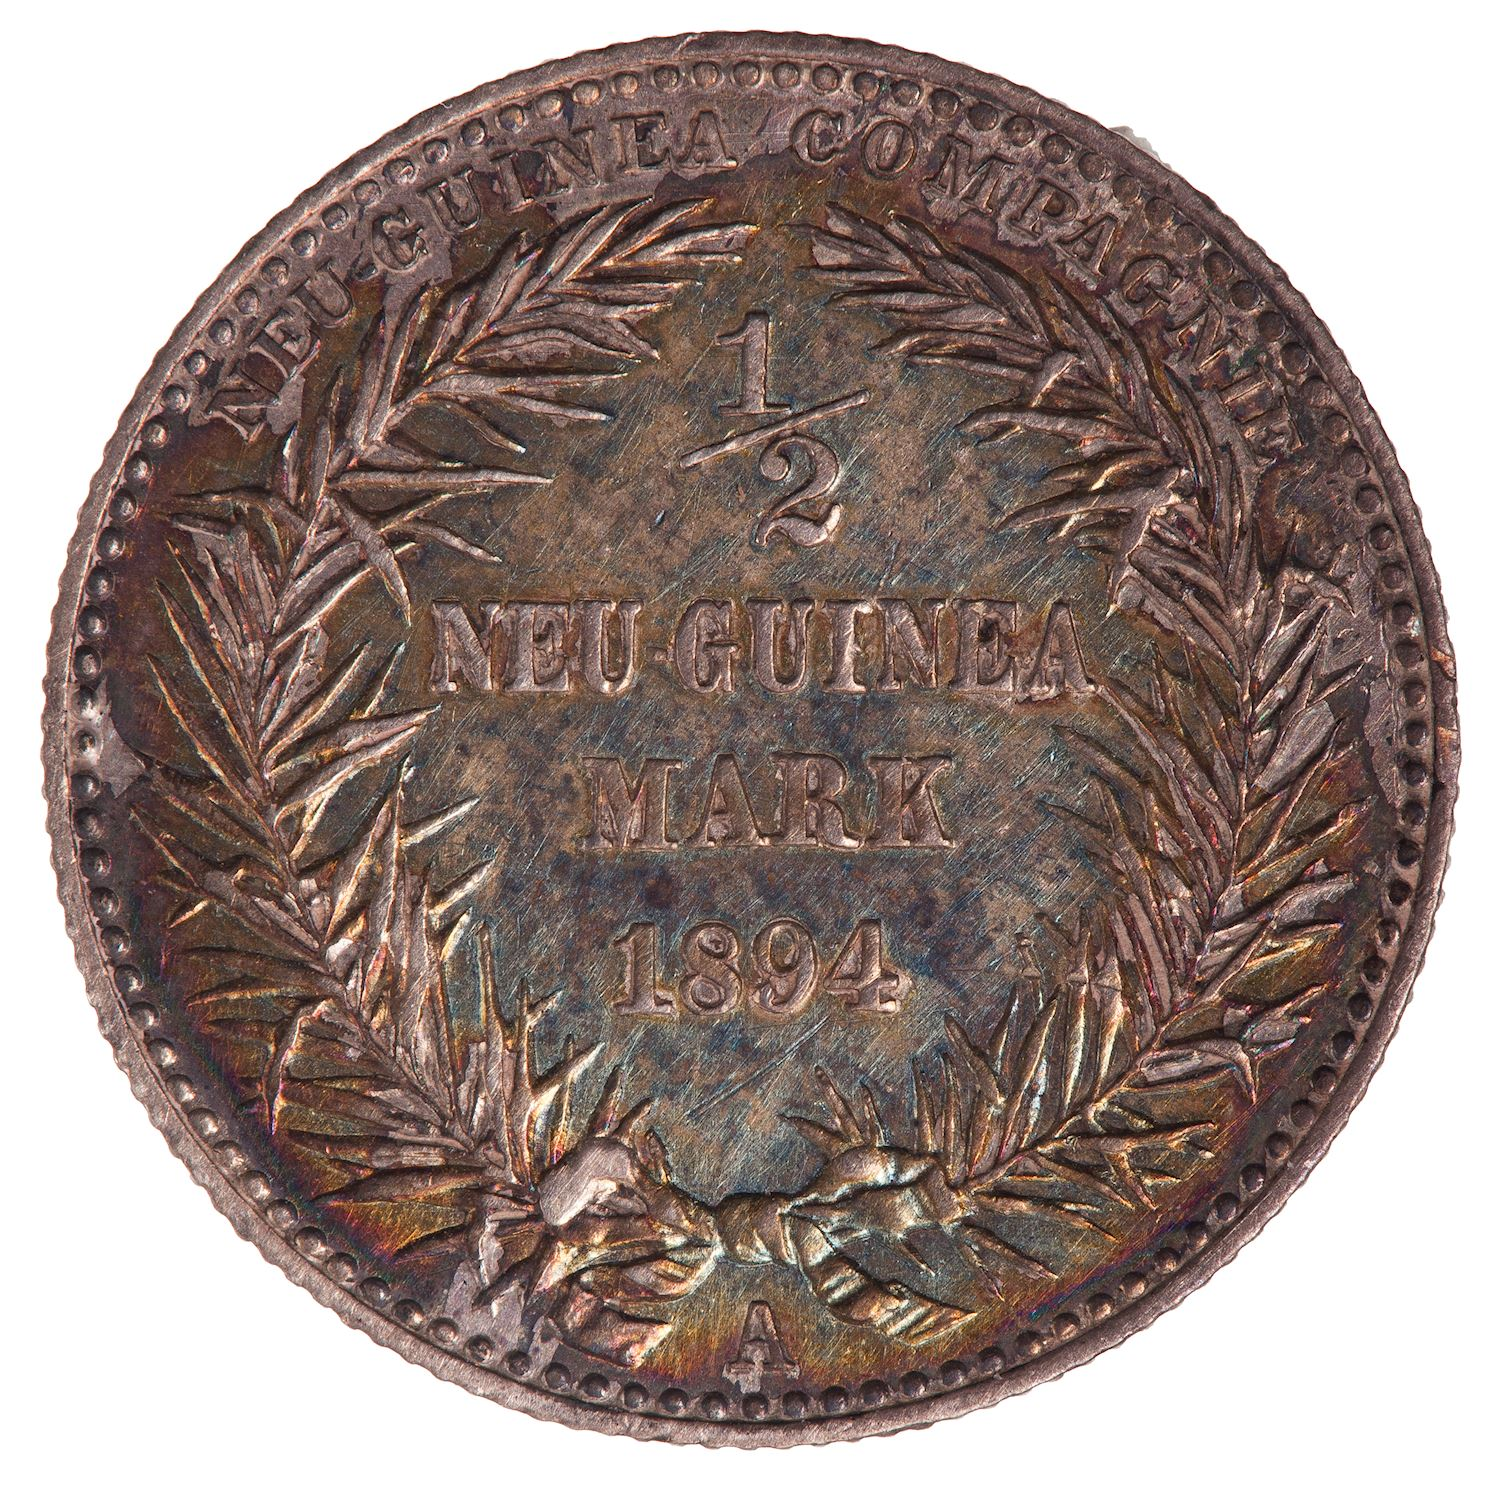 Half Mark 1894: Photo Coin - 1/2 Mark, German New Guinea (Papua New Guinea), 1894